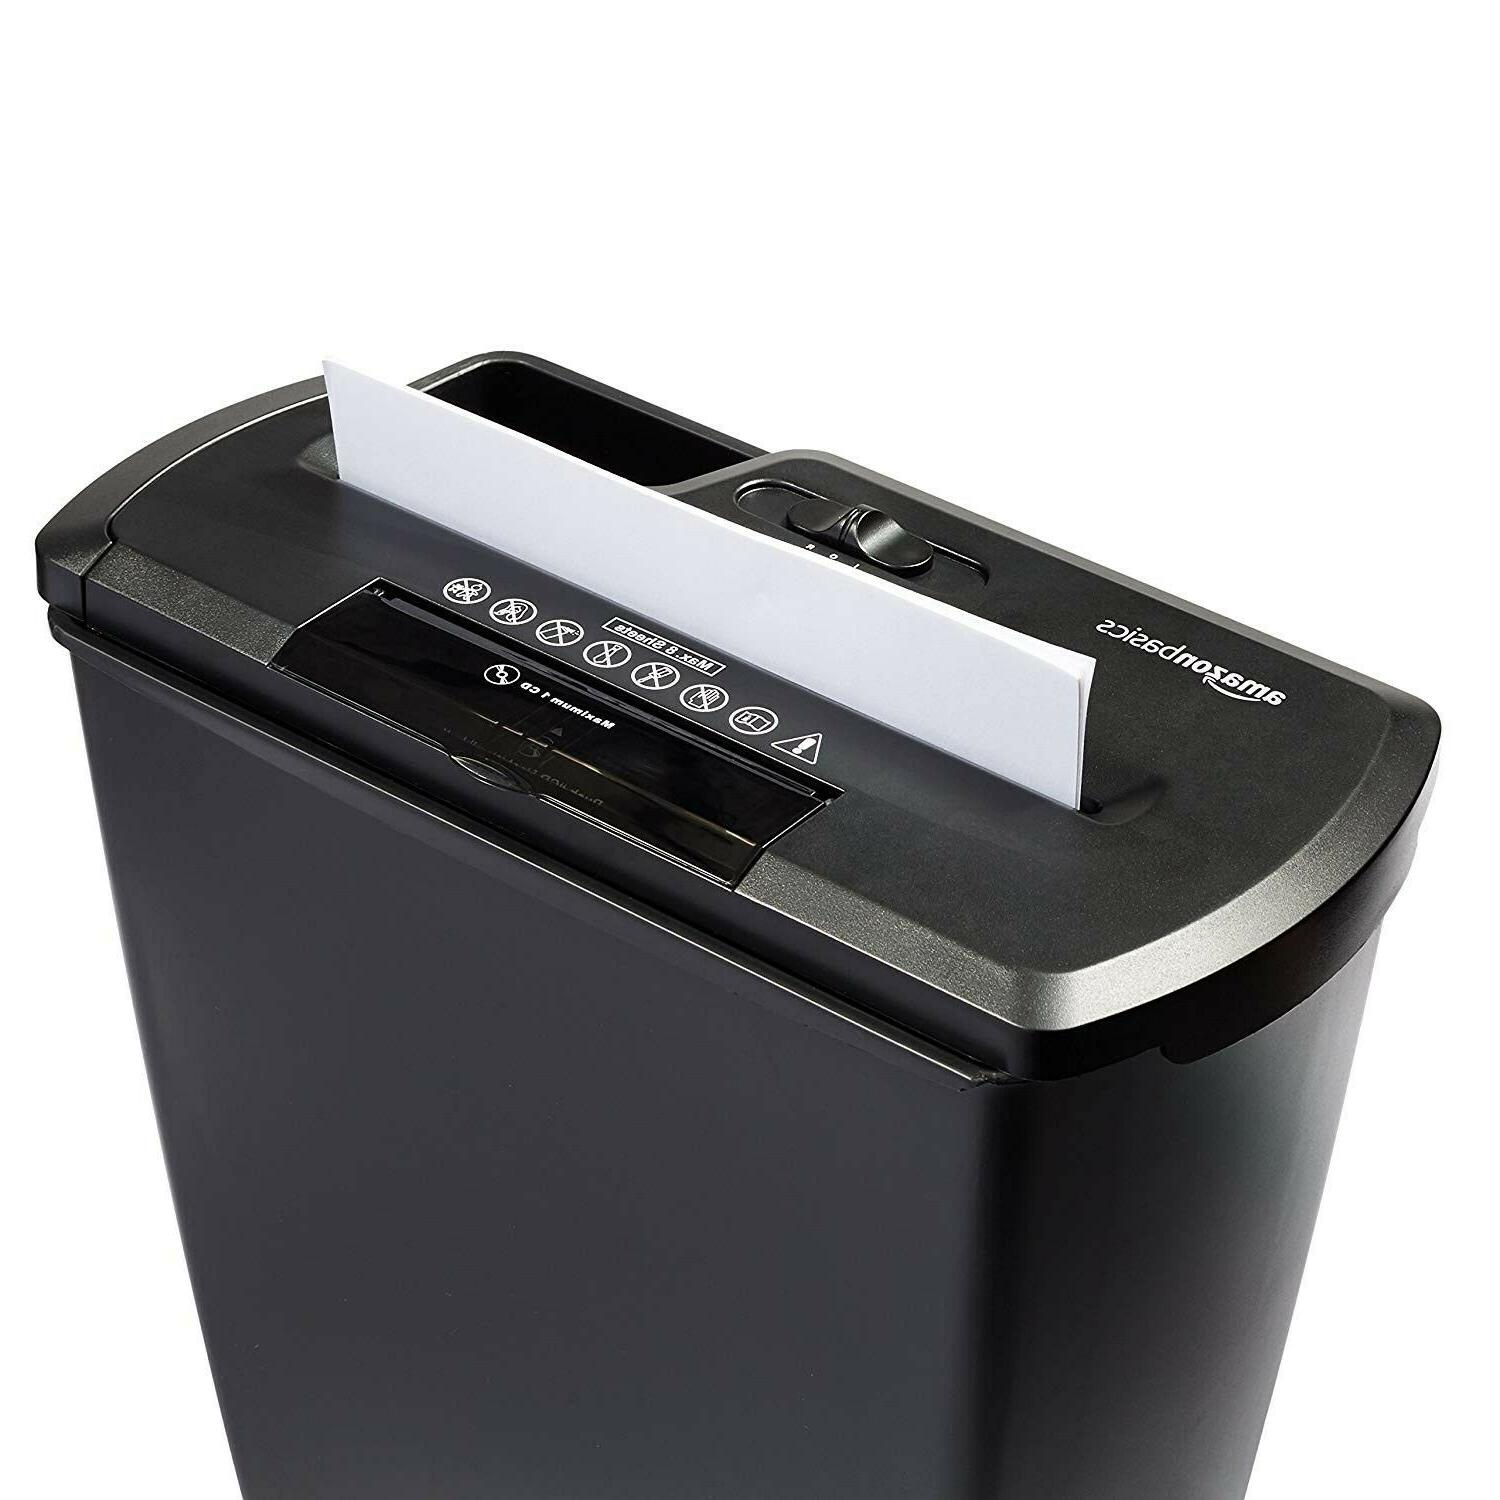 AmazonBasics 8-Sheet Paper, CD Home Office Shredder.